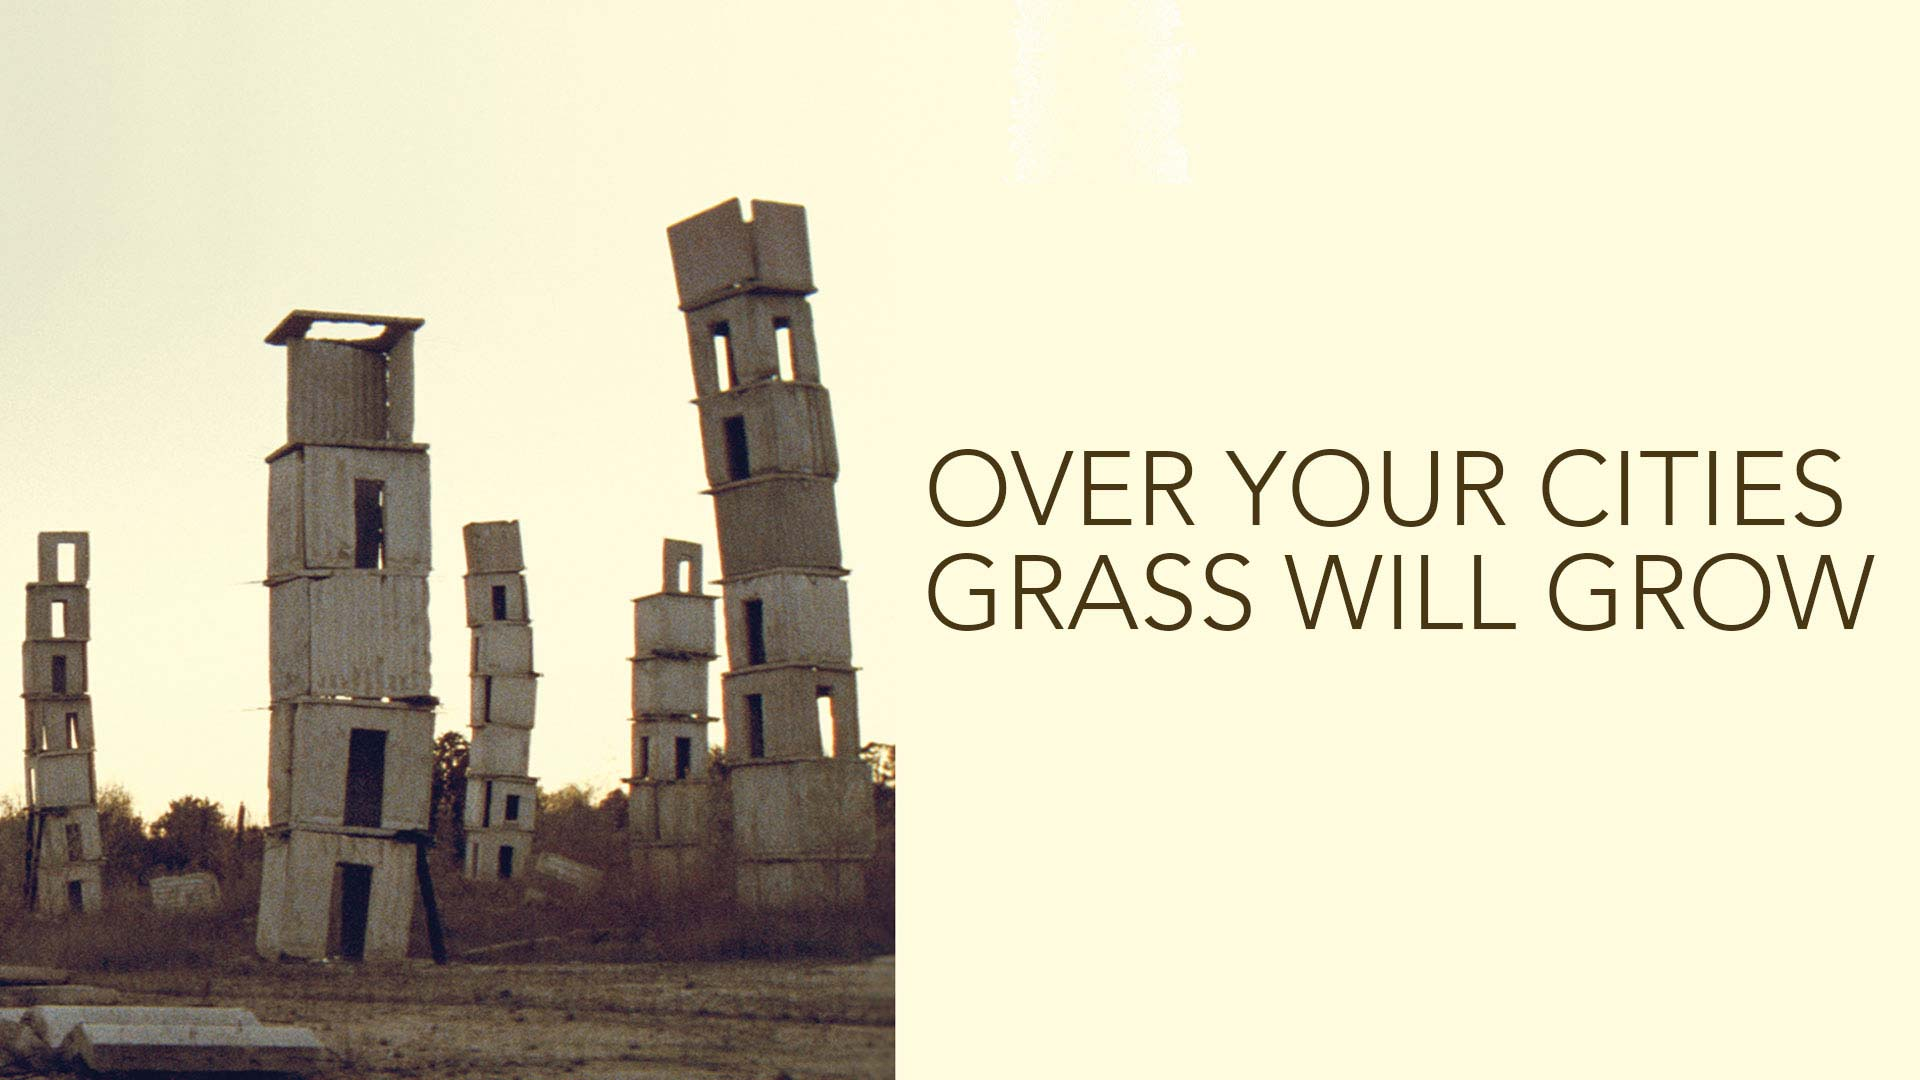 Over Your Cities Grass Will Grow - image